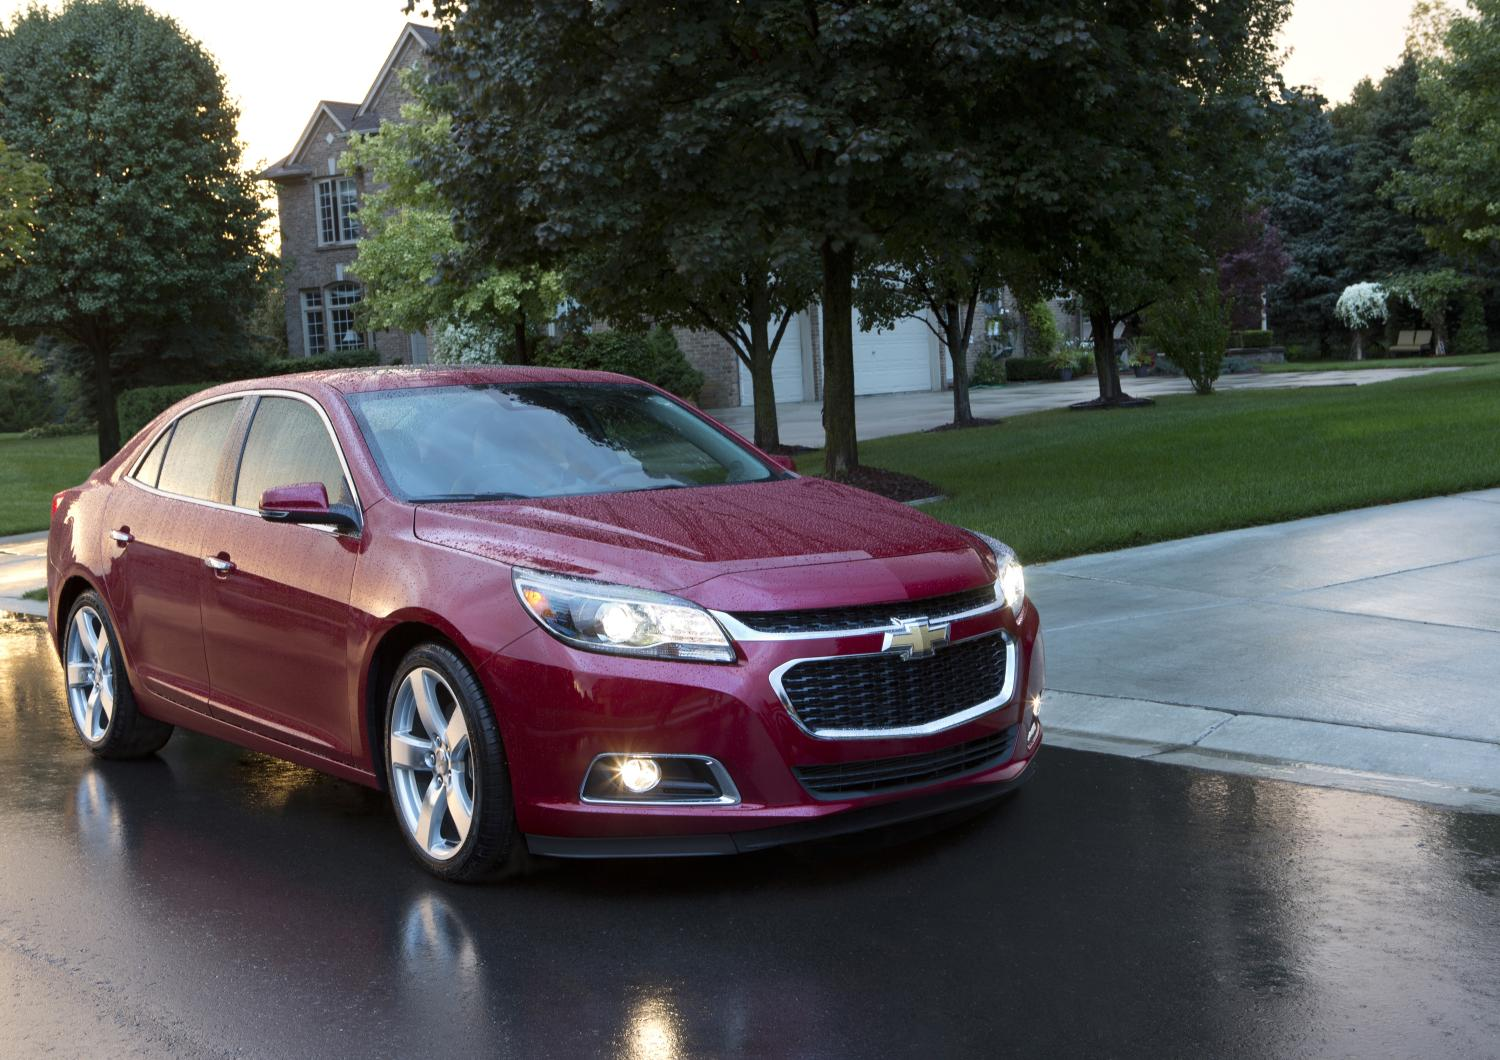 Malibu 2014 chevrolet malibu ltz : 2014 Chevrolet Malibu Development Helped by 3D Printing ...